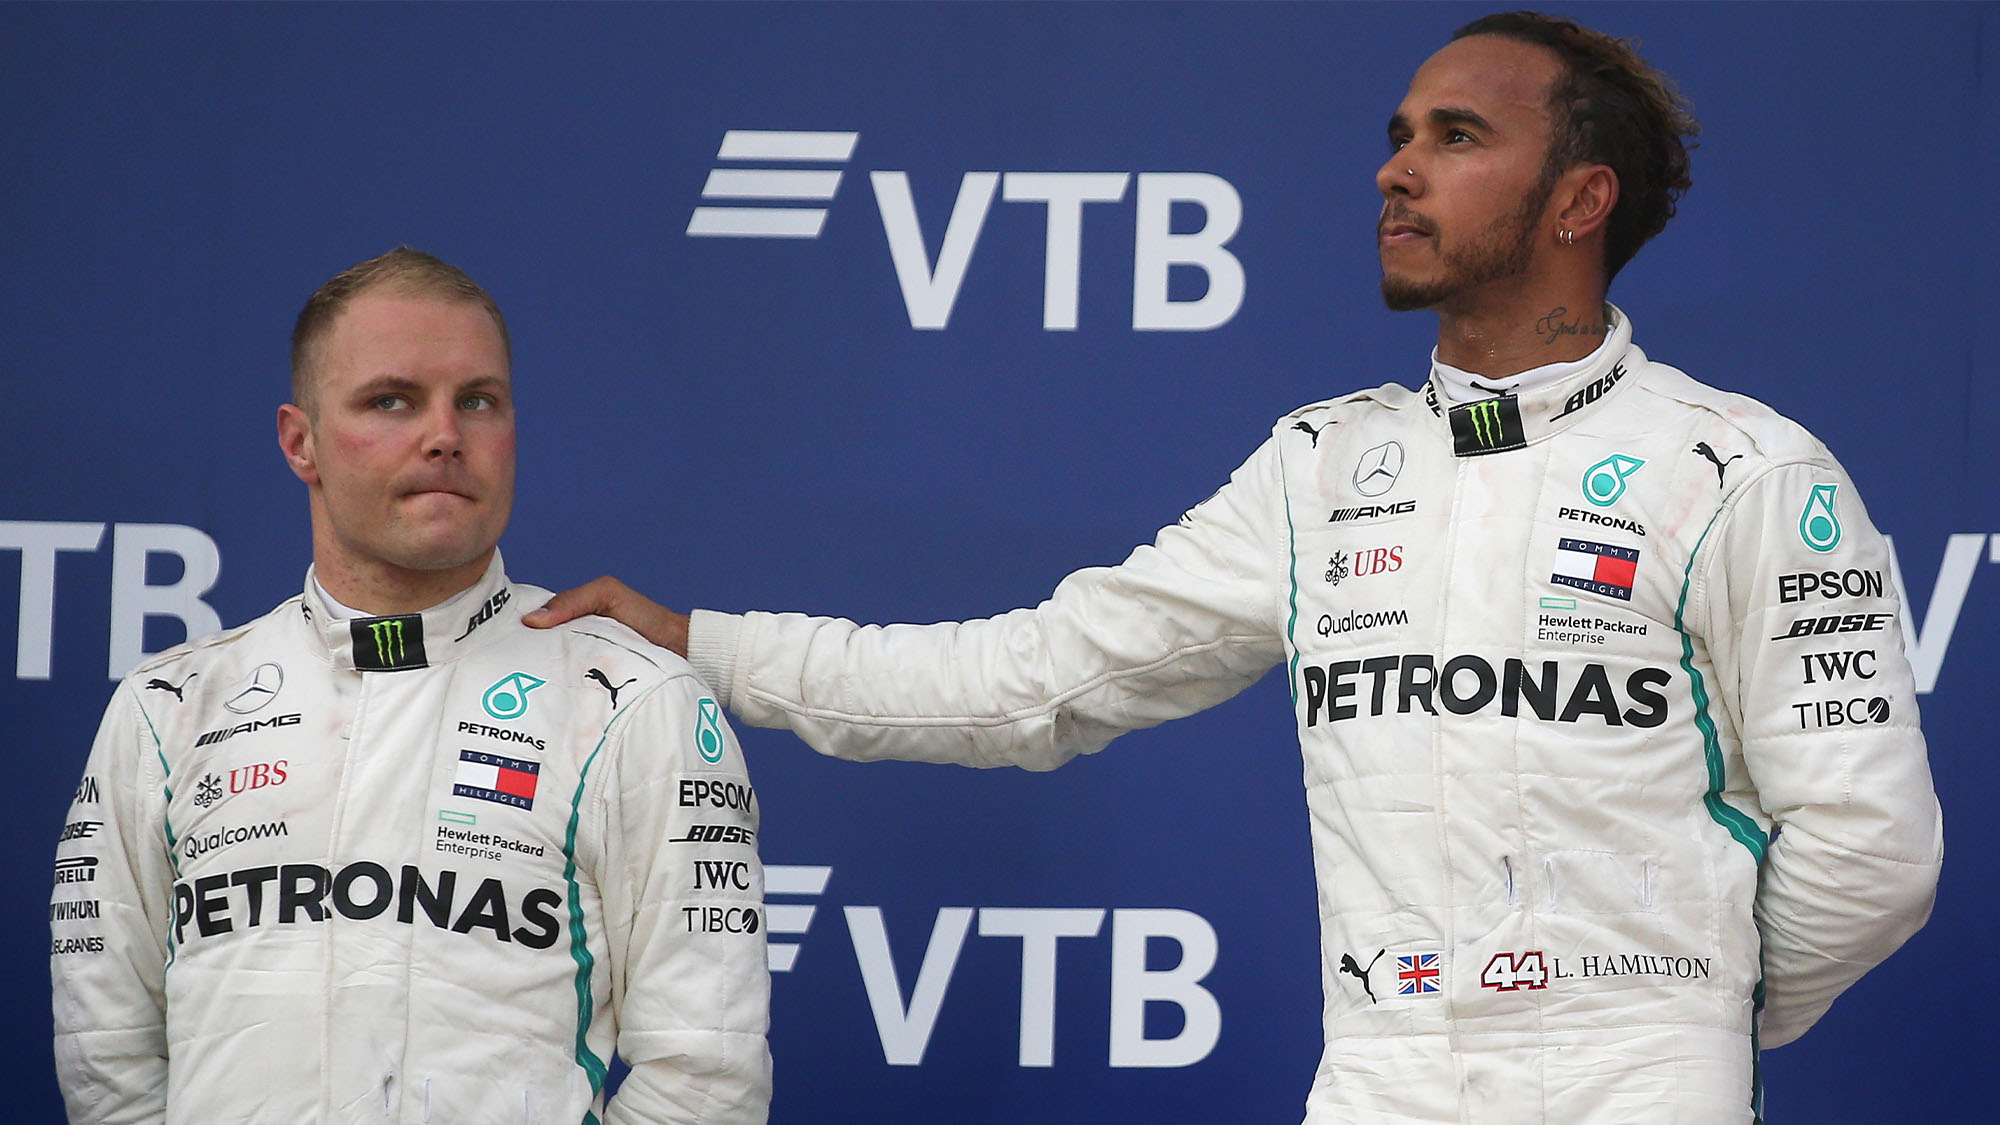 SOCHI, RUSSIA SEPTEMBER 30, 2018: Mercedes AMG Petronas drivers Valtteri Bottas (L) of Finland, second-placed, and Lewis Hamilton (L-R) of the United Kingdom, first-placed, attend the 2018 Formula One Russian Grand Prix awarding ceremony at the Sochi Autodrom racing circuit. Yegor Aleyev/TASS (Photo by Yegor Aleyev\TASS via Getty Images)